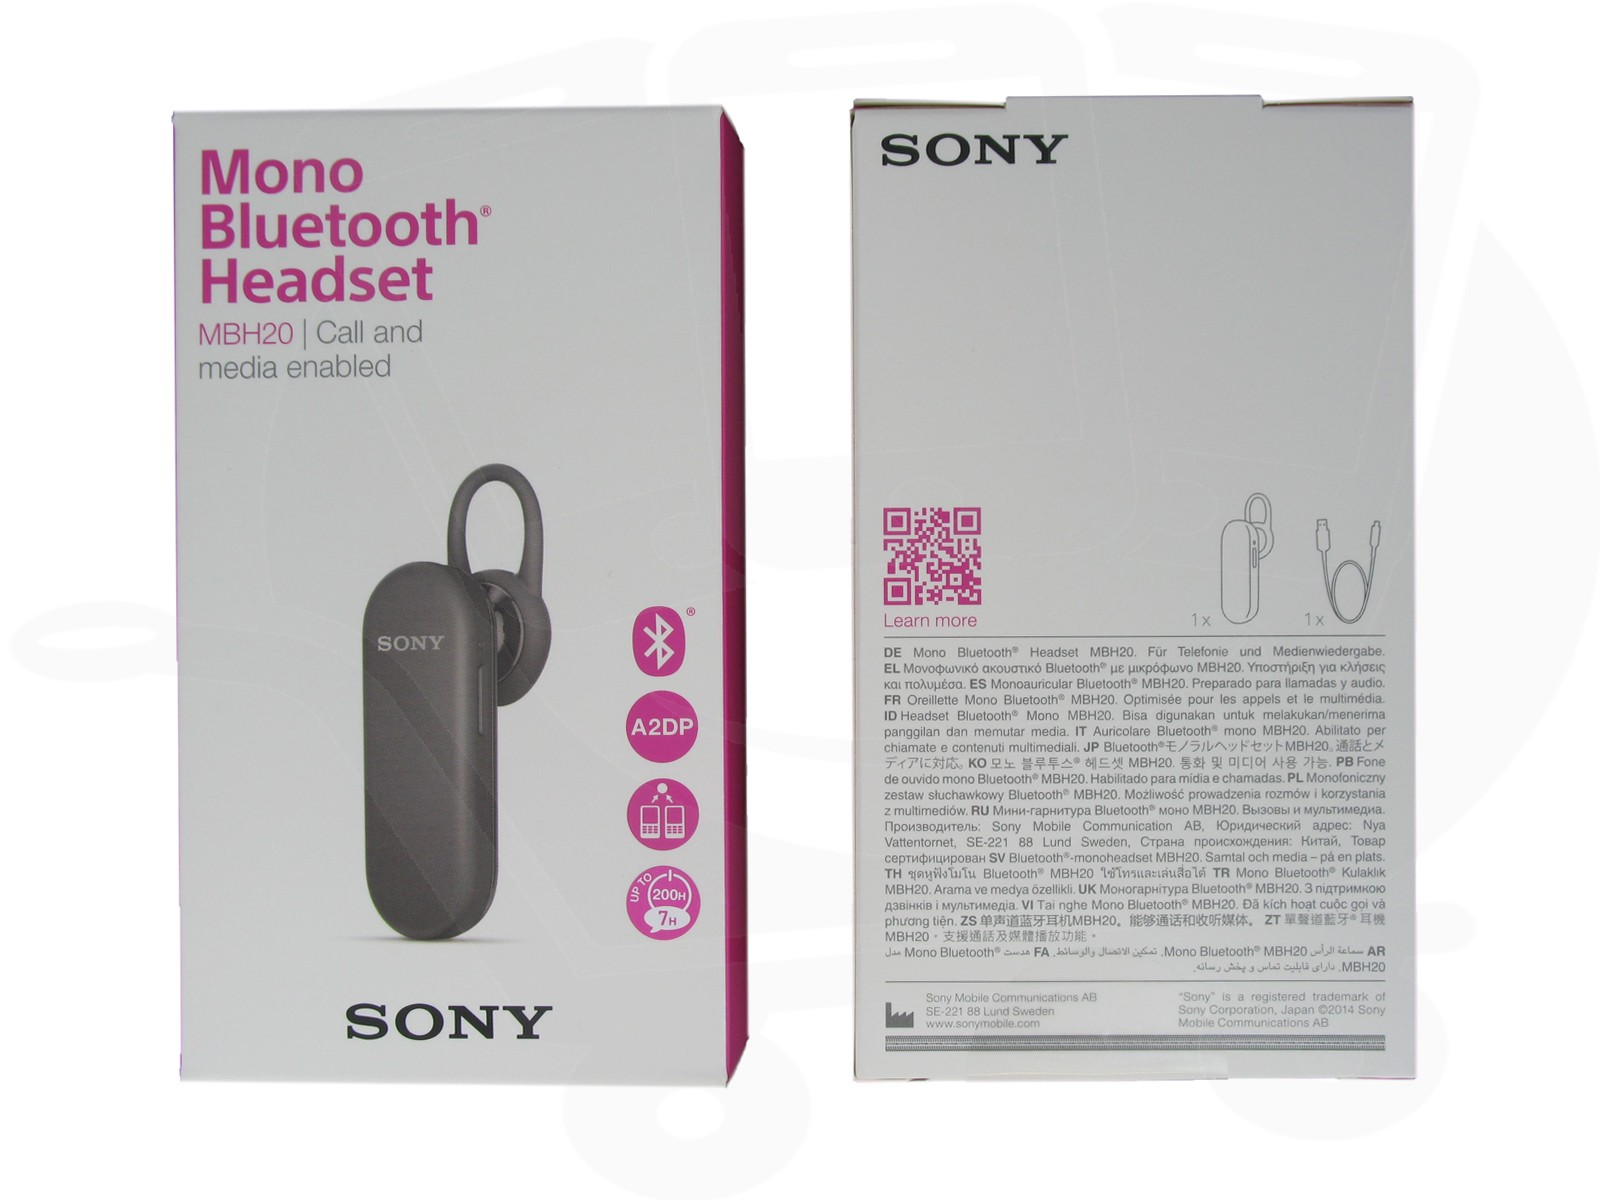 Official Sony Mbh20 Mono Bluetooth Headset Black